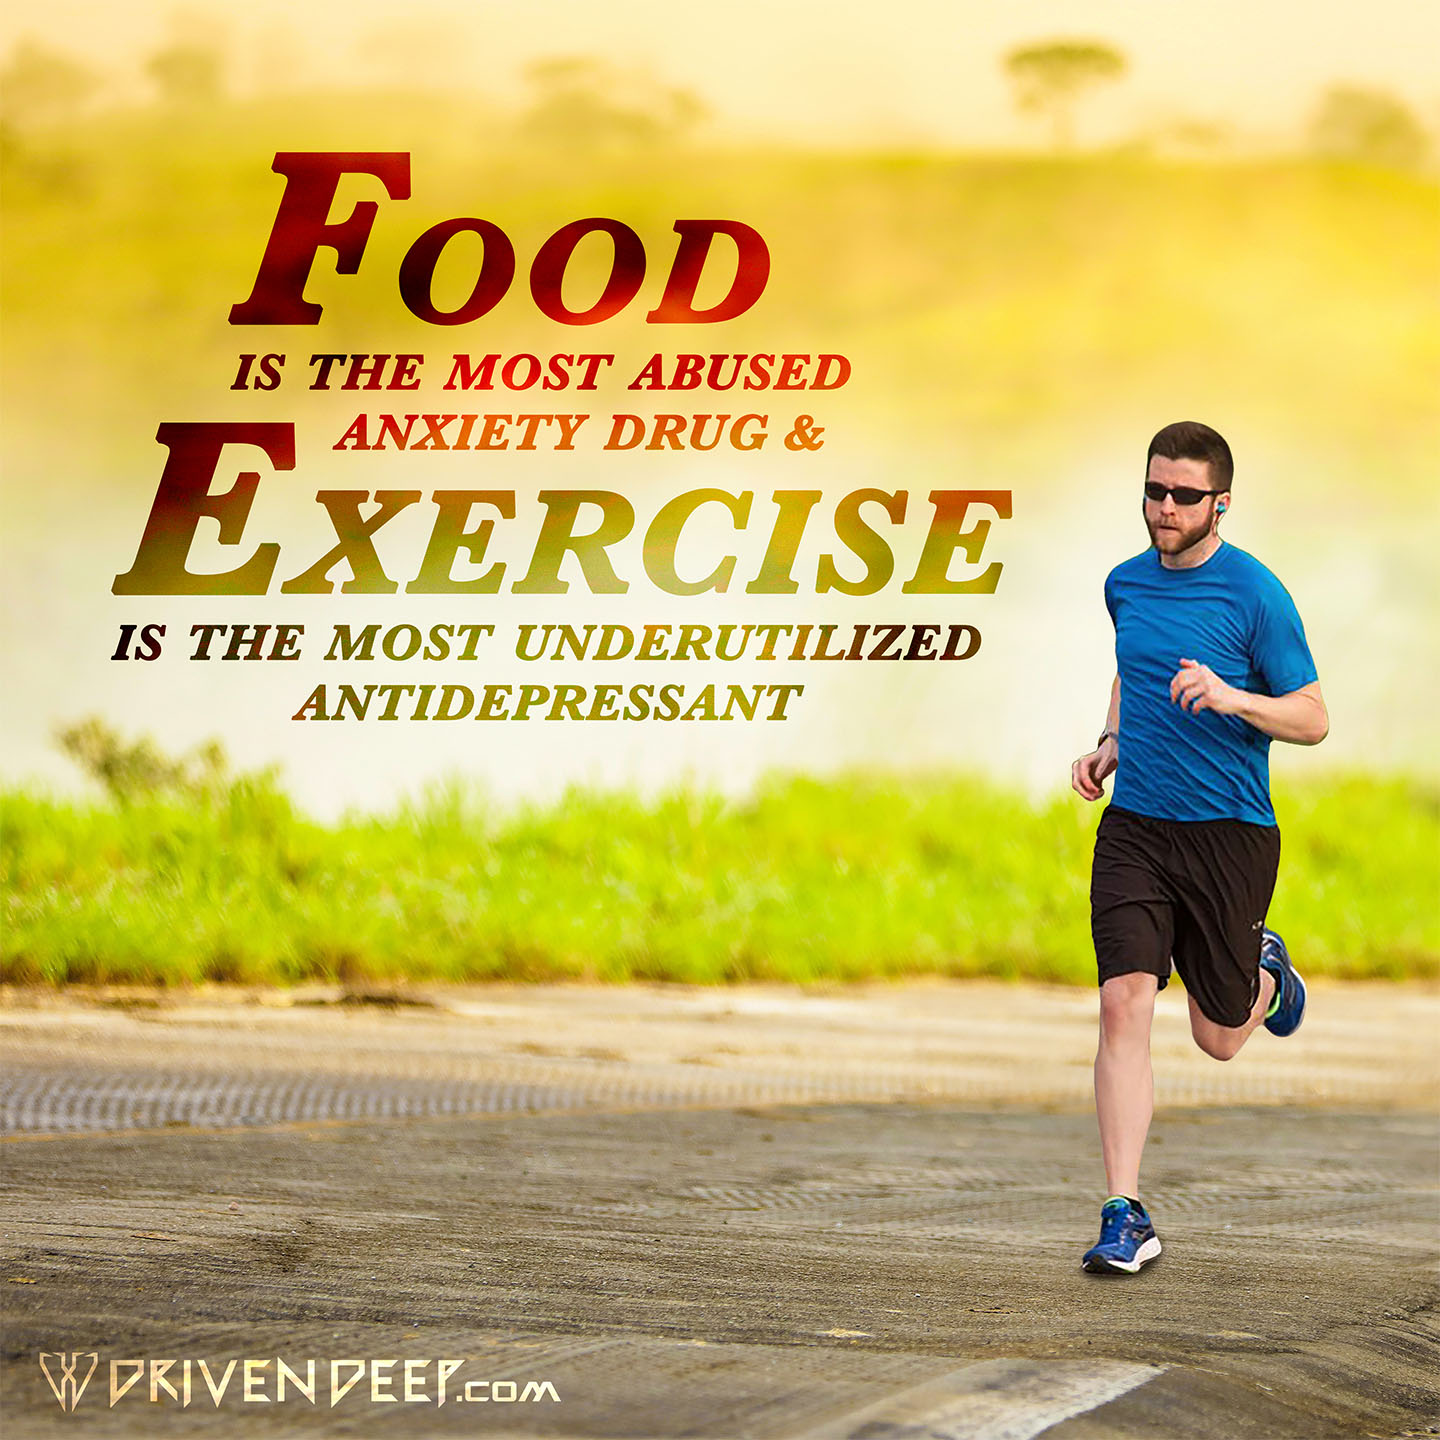 Food Anxiety Exercise Antidepressant - Small.jpg